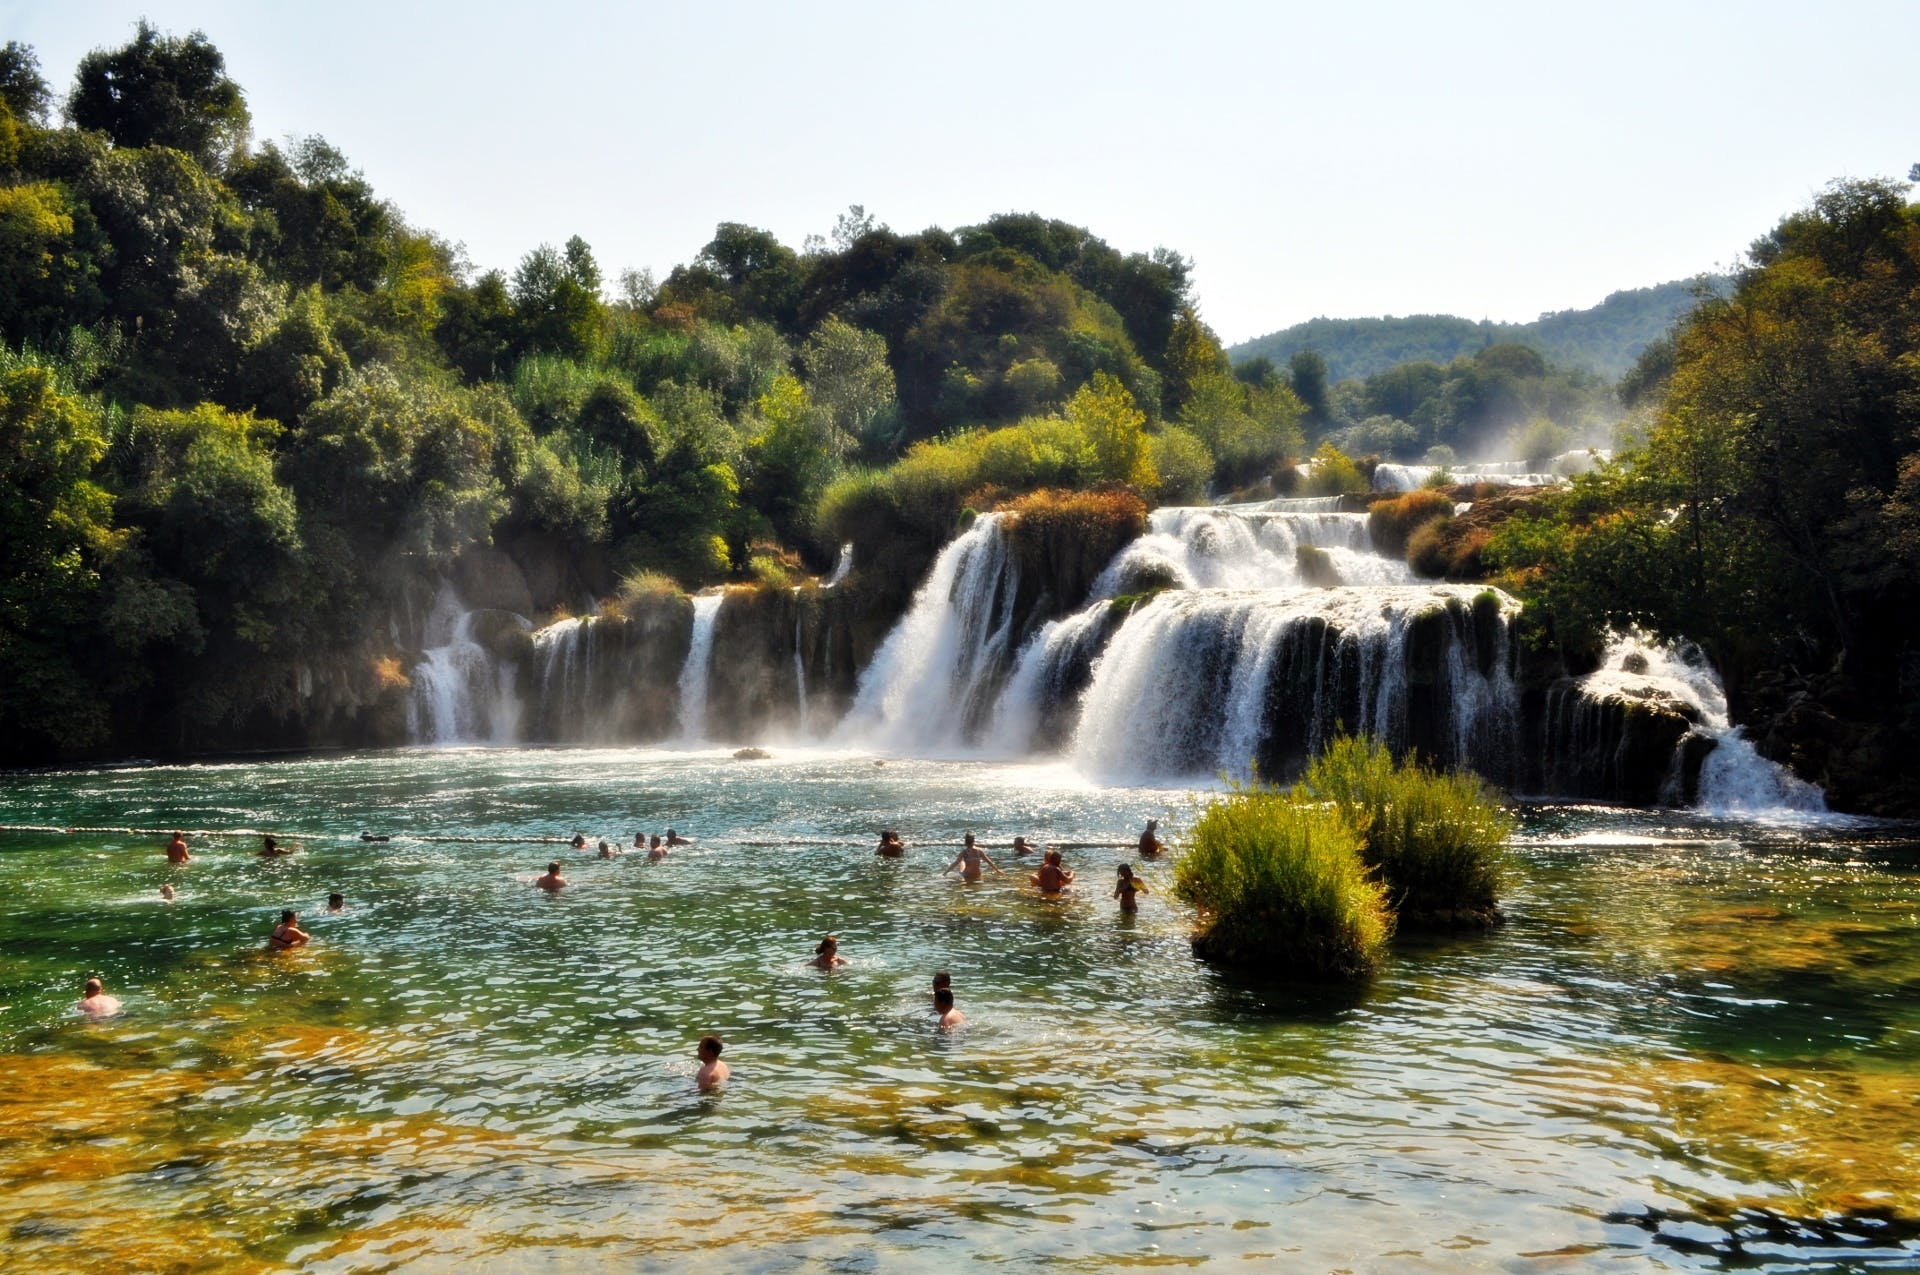 People Swimming Near Waterfall during Daytime